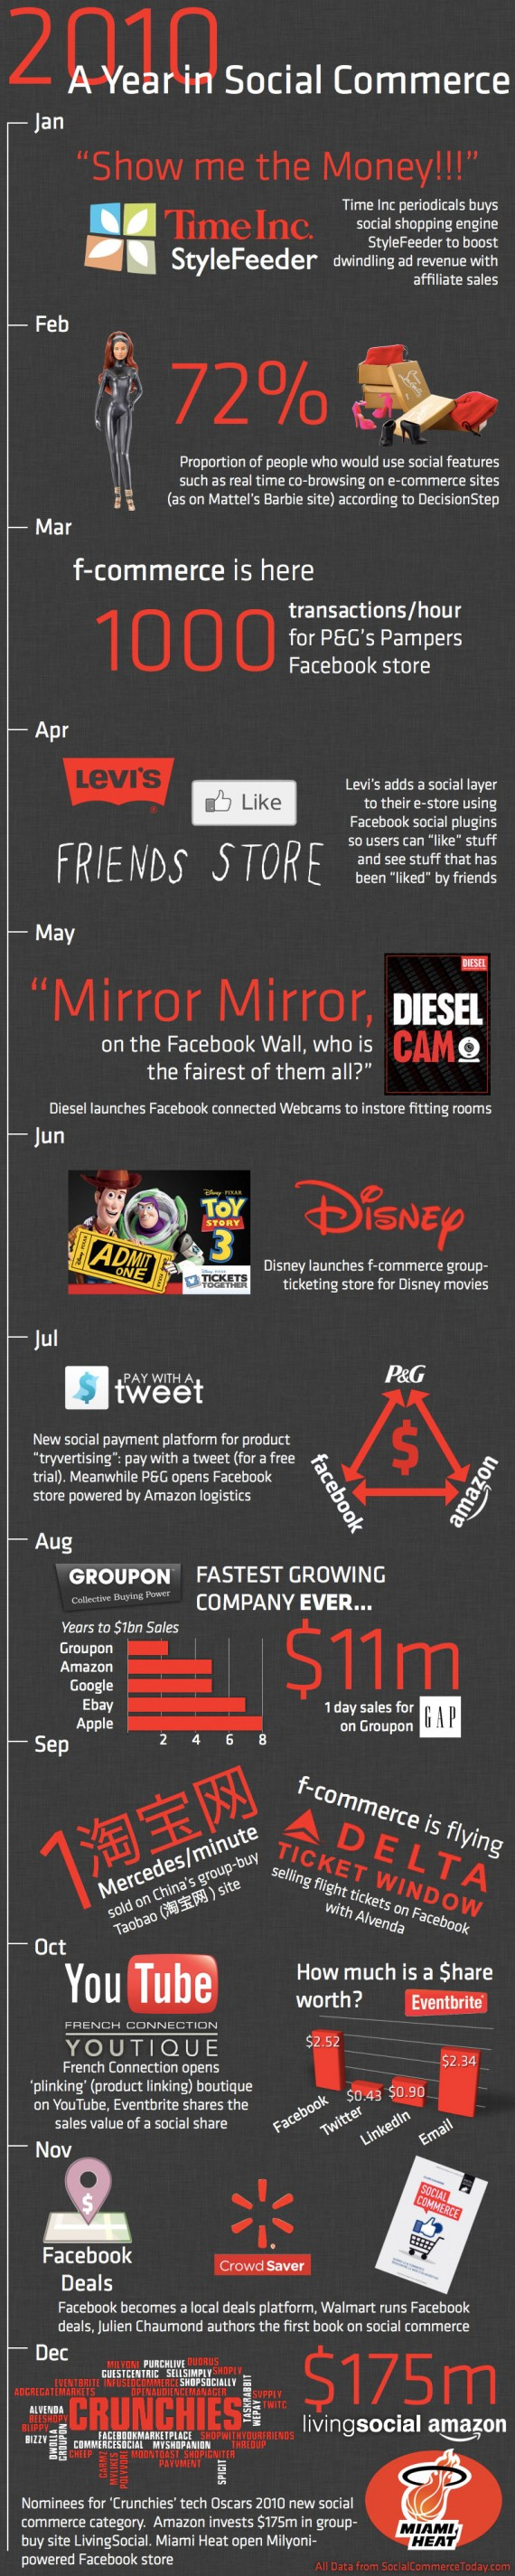 socialcommerceinfographic.jpg